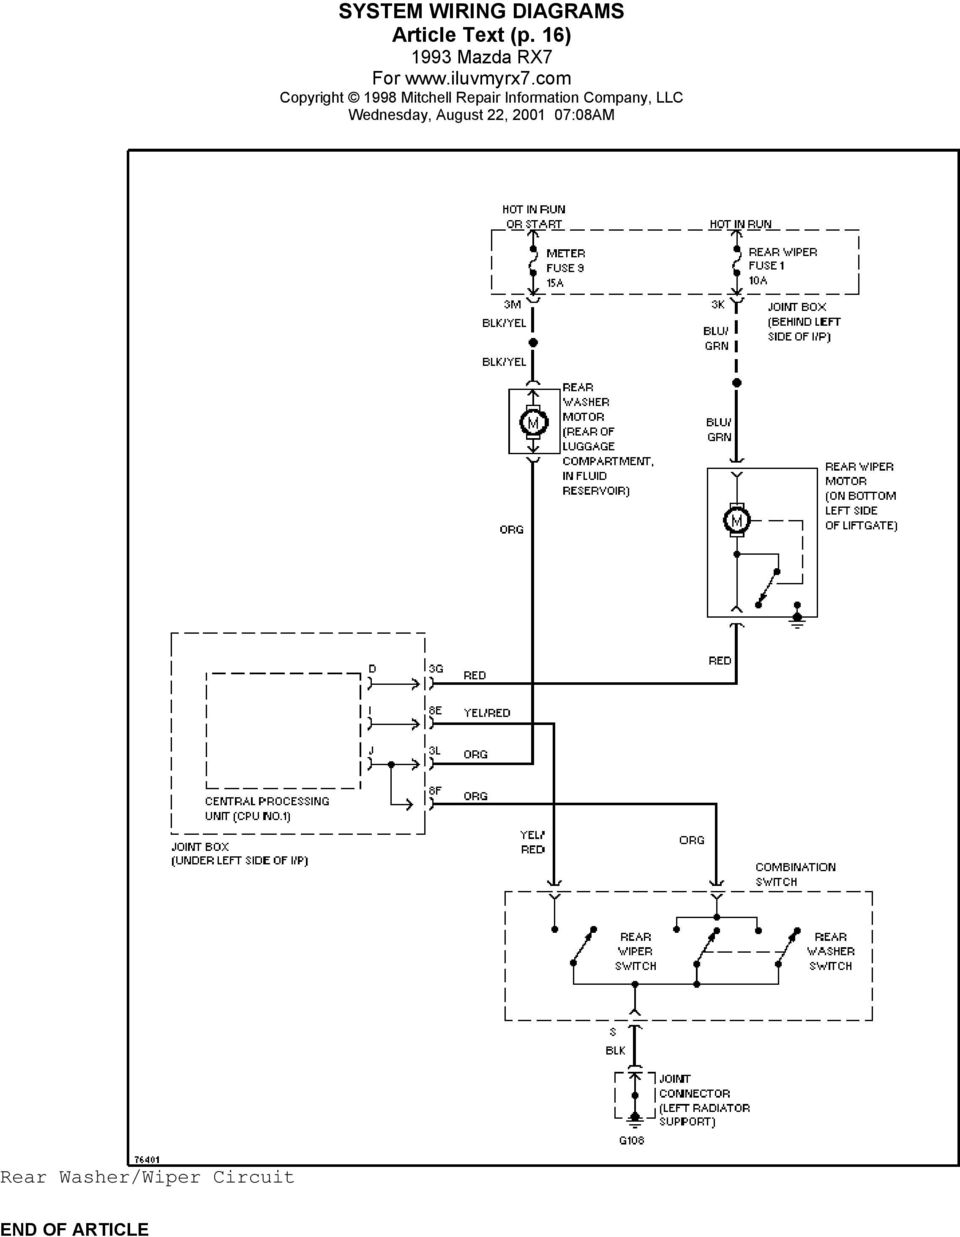 hight resolution of 18 wiring diagram symbols article text wednesday august 22 09am article beginning wiring diagrams how to use the wiring diagrams wiring diagrams